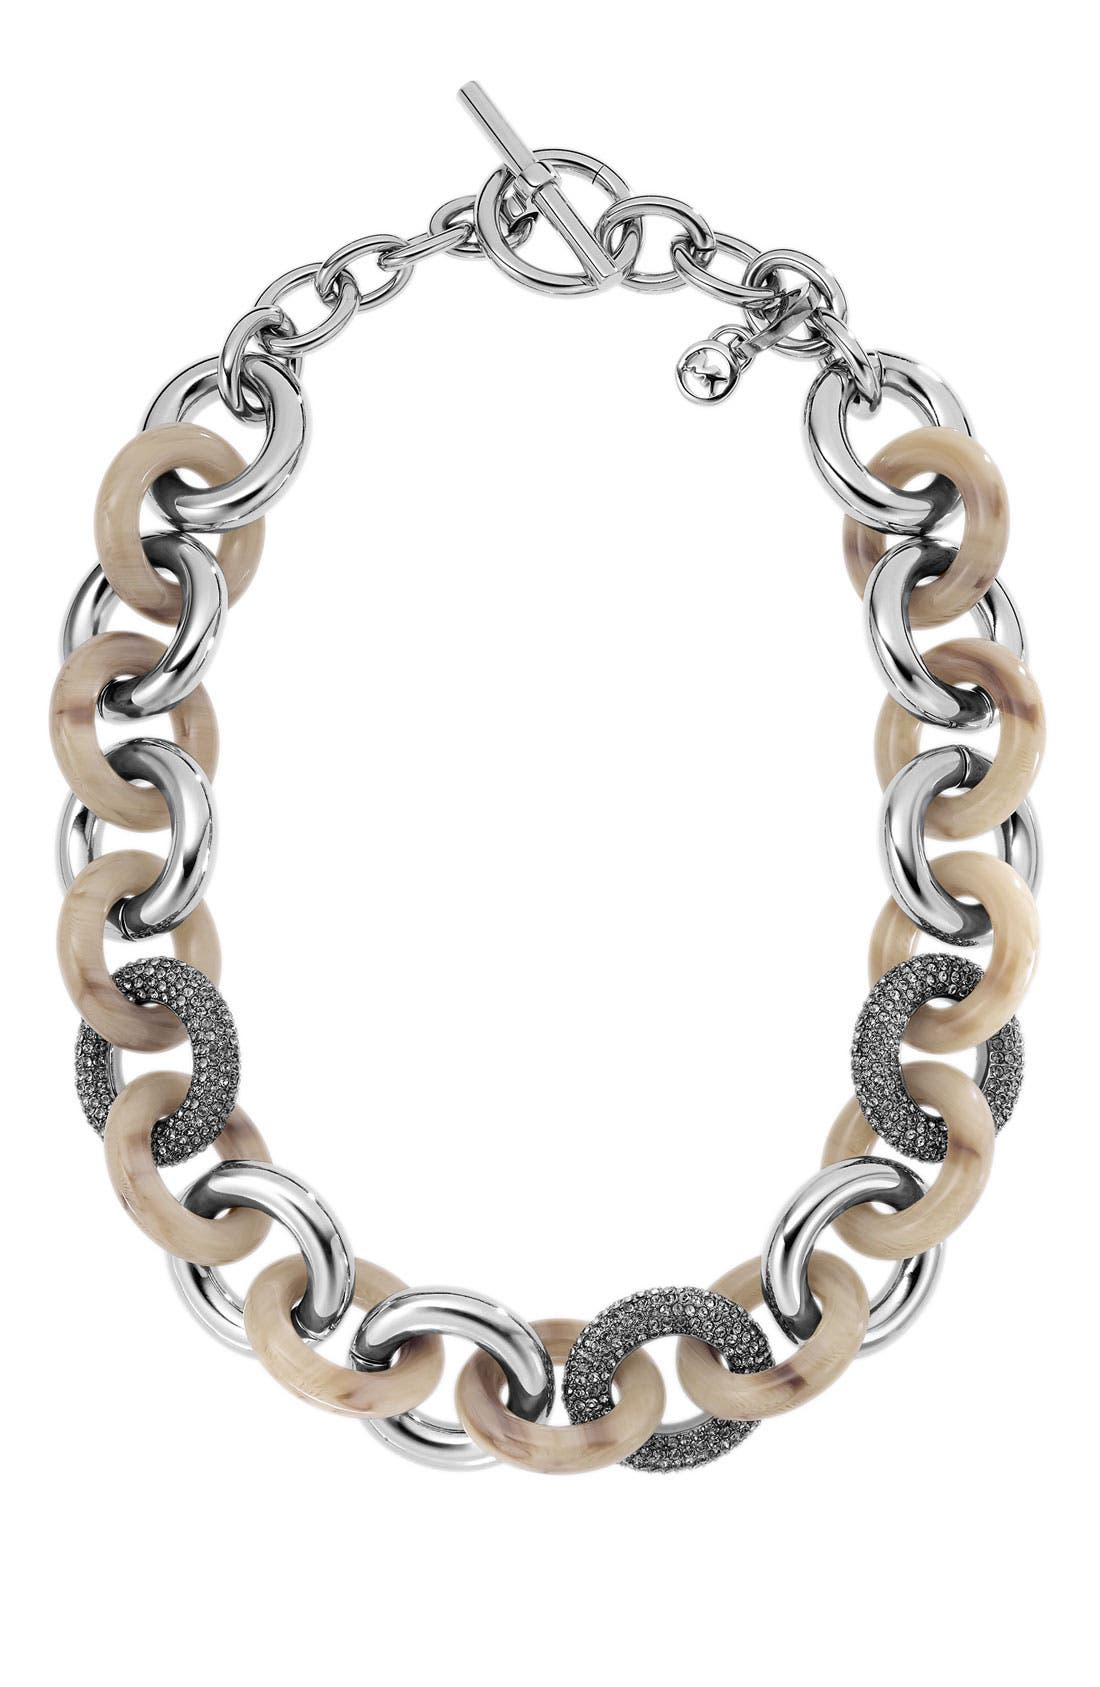 Main Image - Michael Kors 'Safari Glam' Open Link Necklace